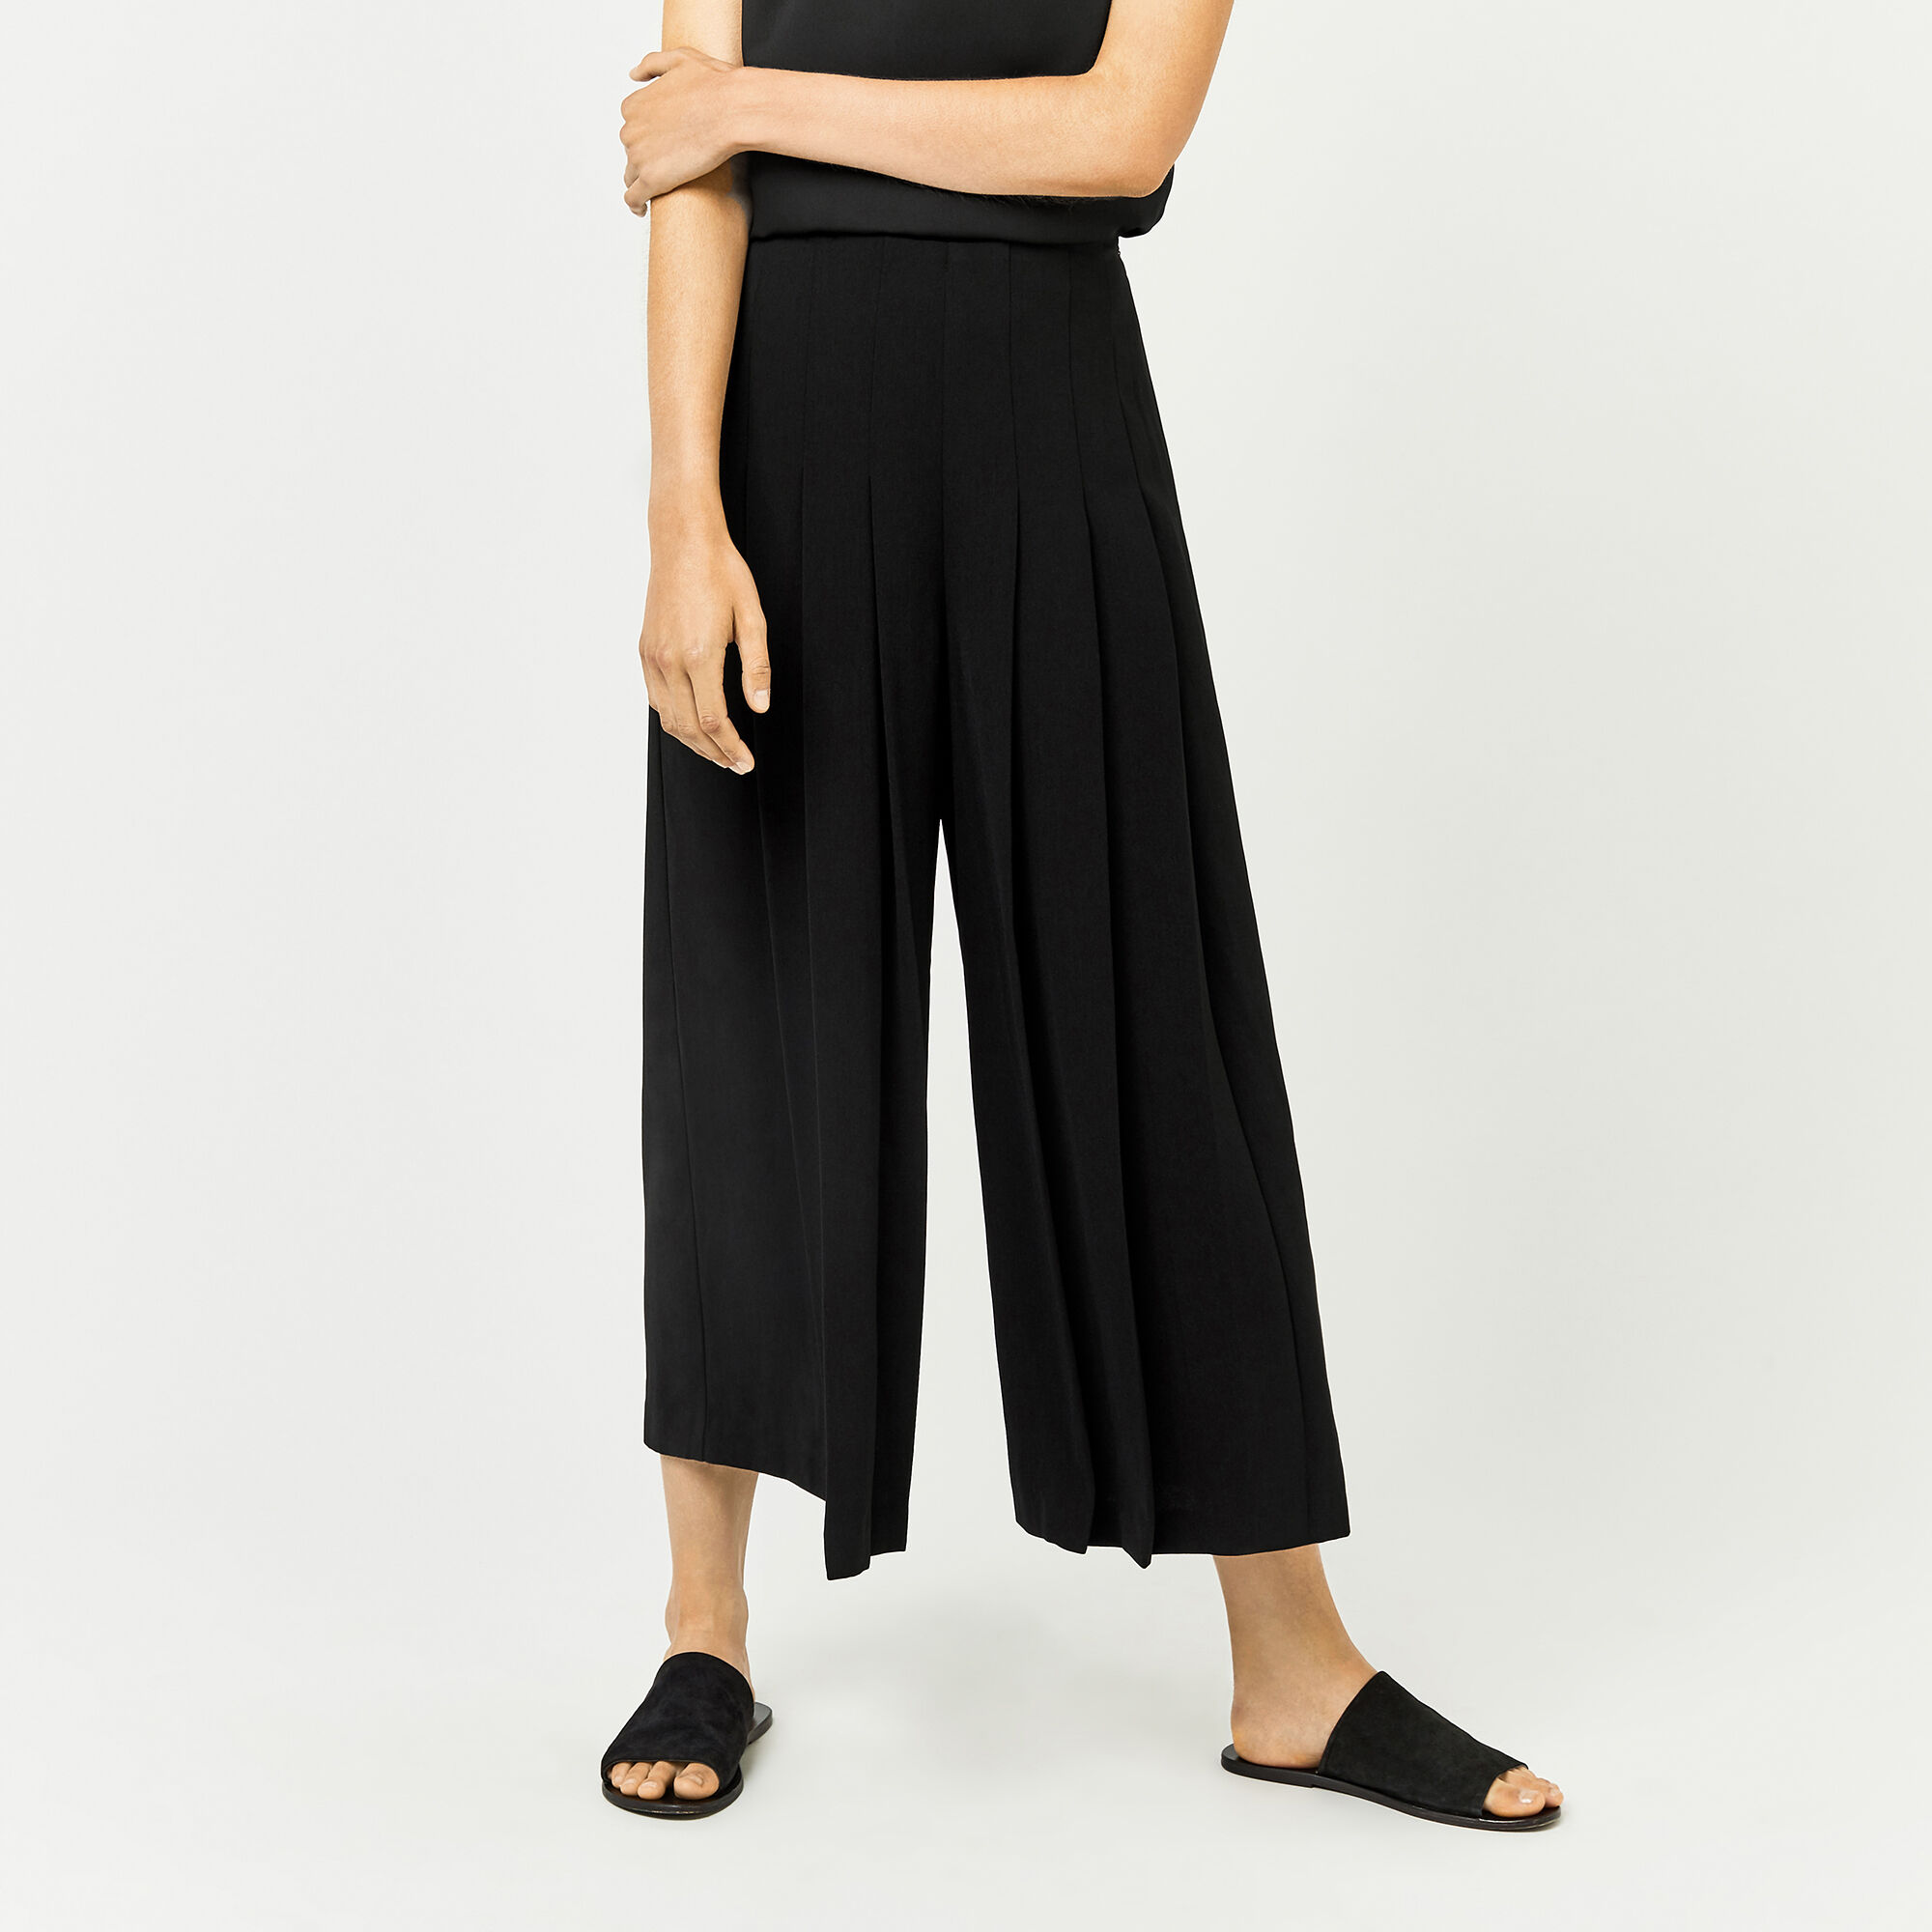 Warehouse, PLEATED CULOTTES Black 1